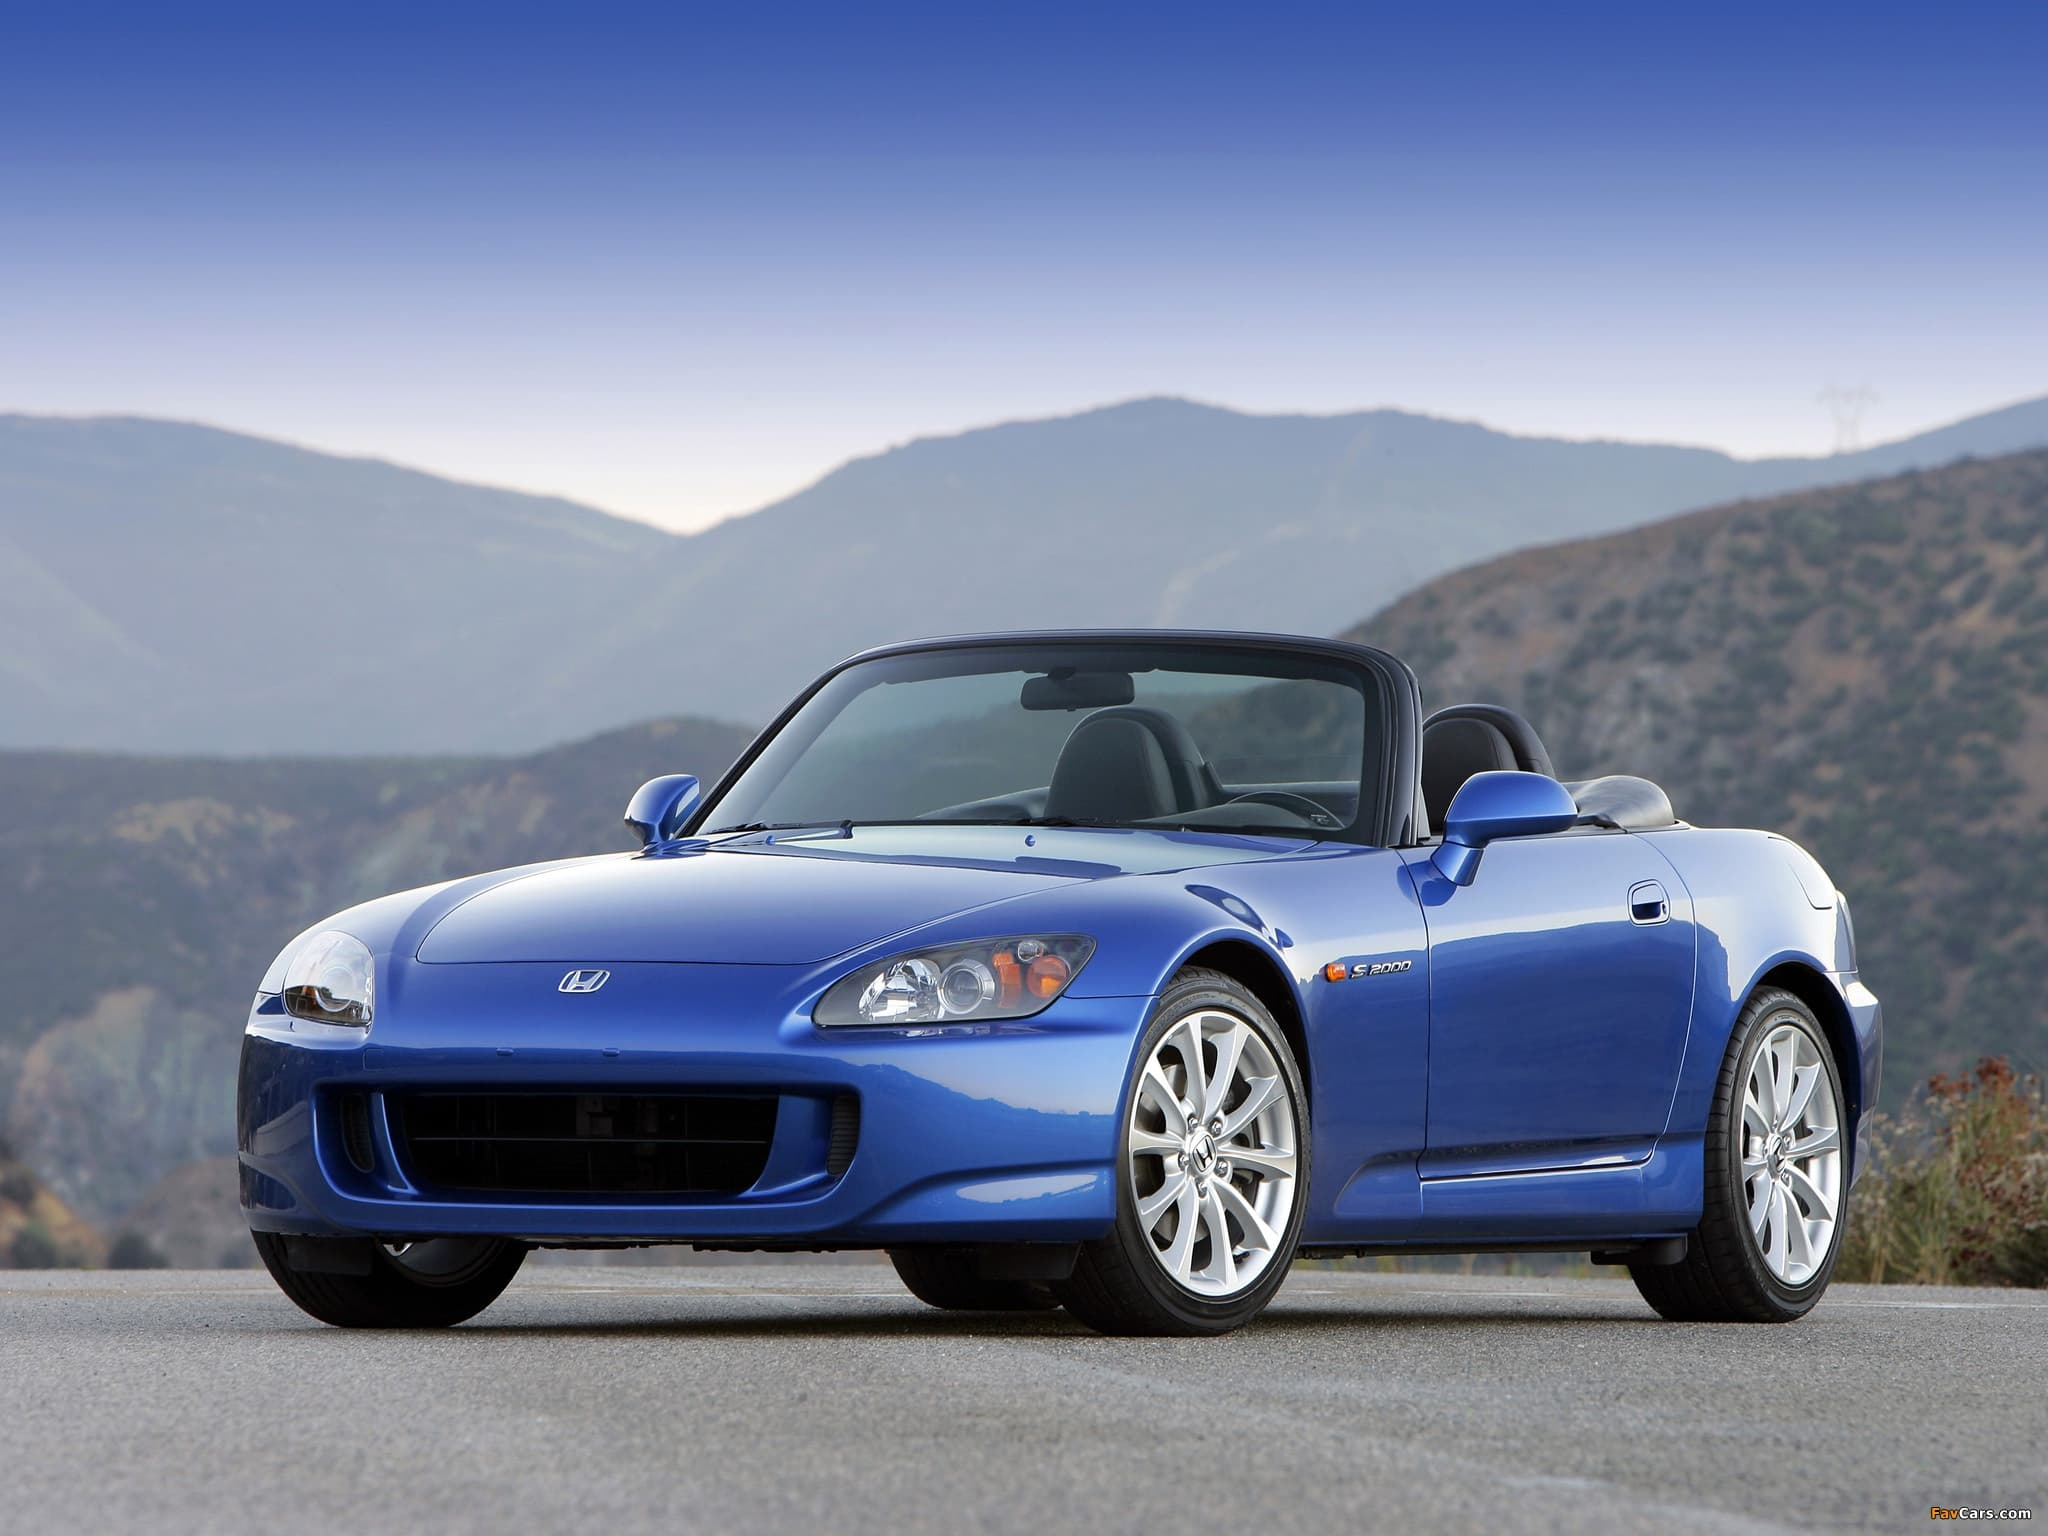 2003 honda s2000 wallpapers 1920x1200 images black white yellow red blue. Black Bedroom Furniture Sets. Home Design Ideas